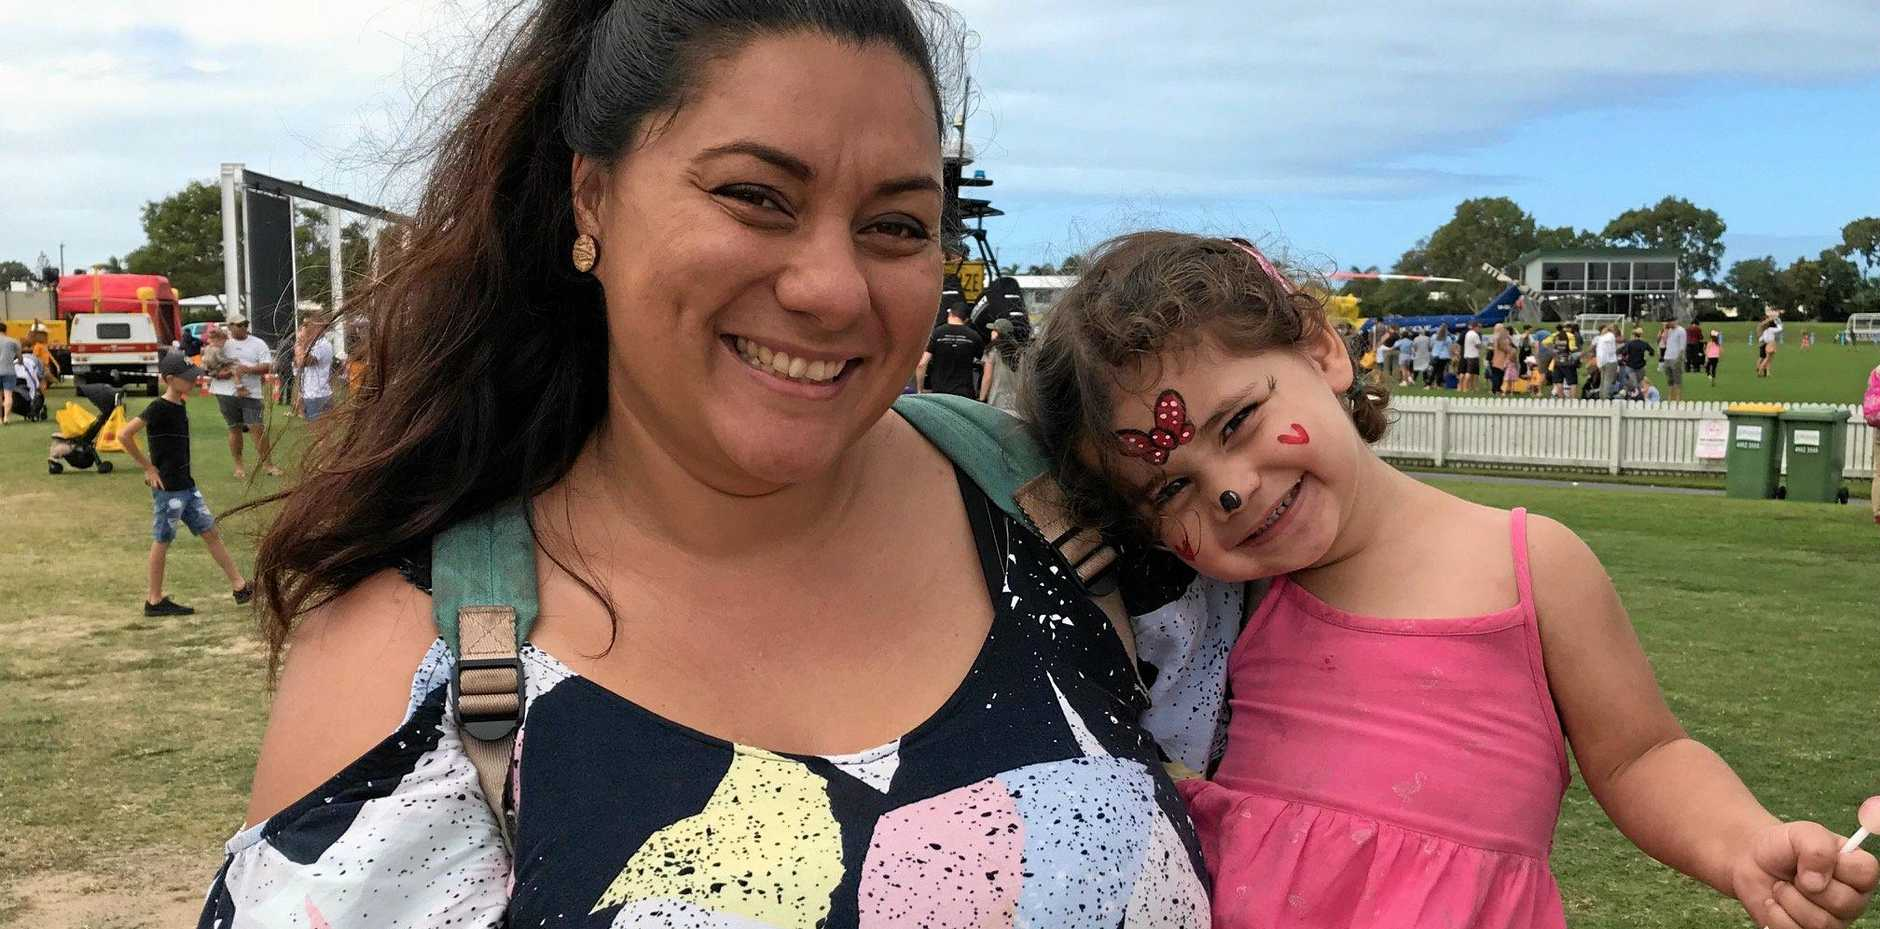 FAMILY FUN: Ramona Burke with Georgia Dean, 2, who loved her face paint at the Emergency Services Day held at Harrup Park on Sunday. They loved learning about all the different emergency services within the Mackay region.